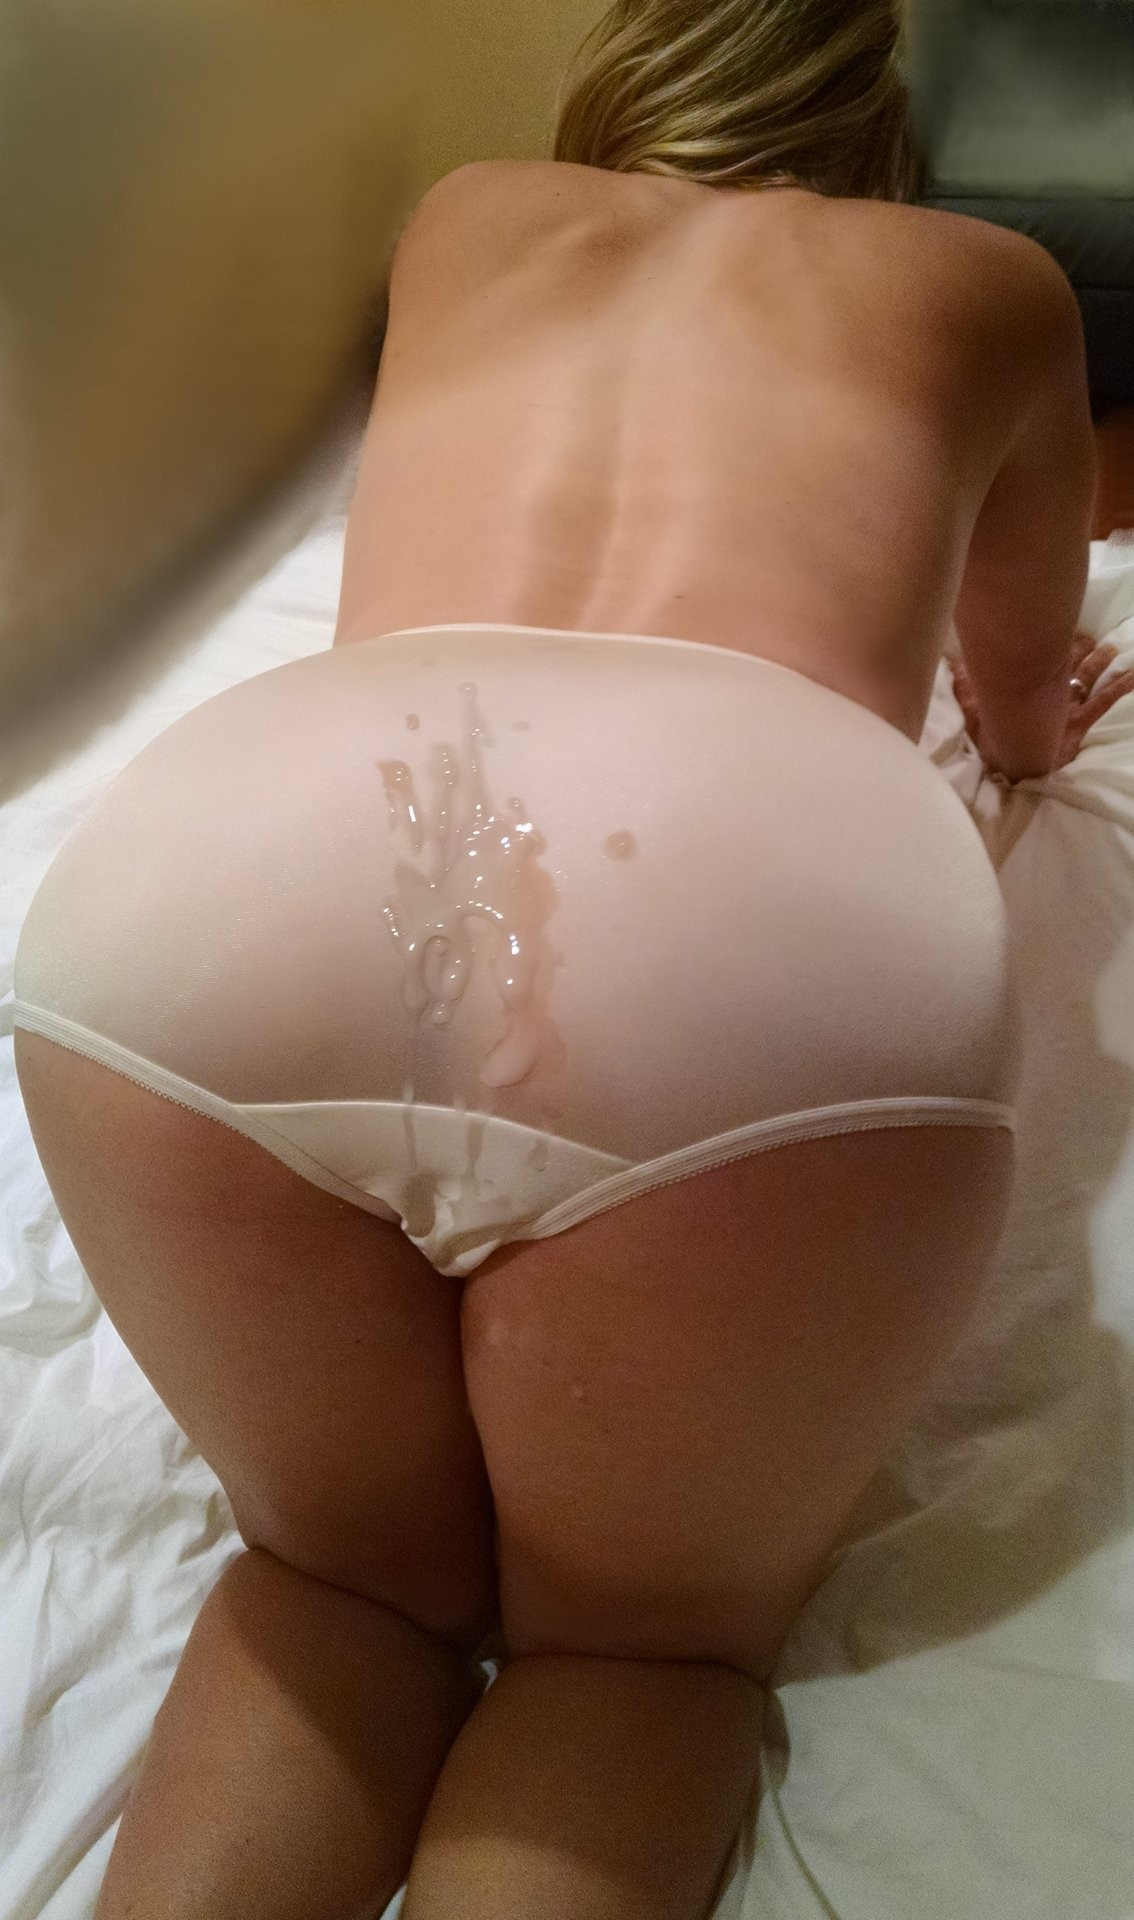 cute-girl-with-cum-on-her-panties